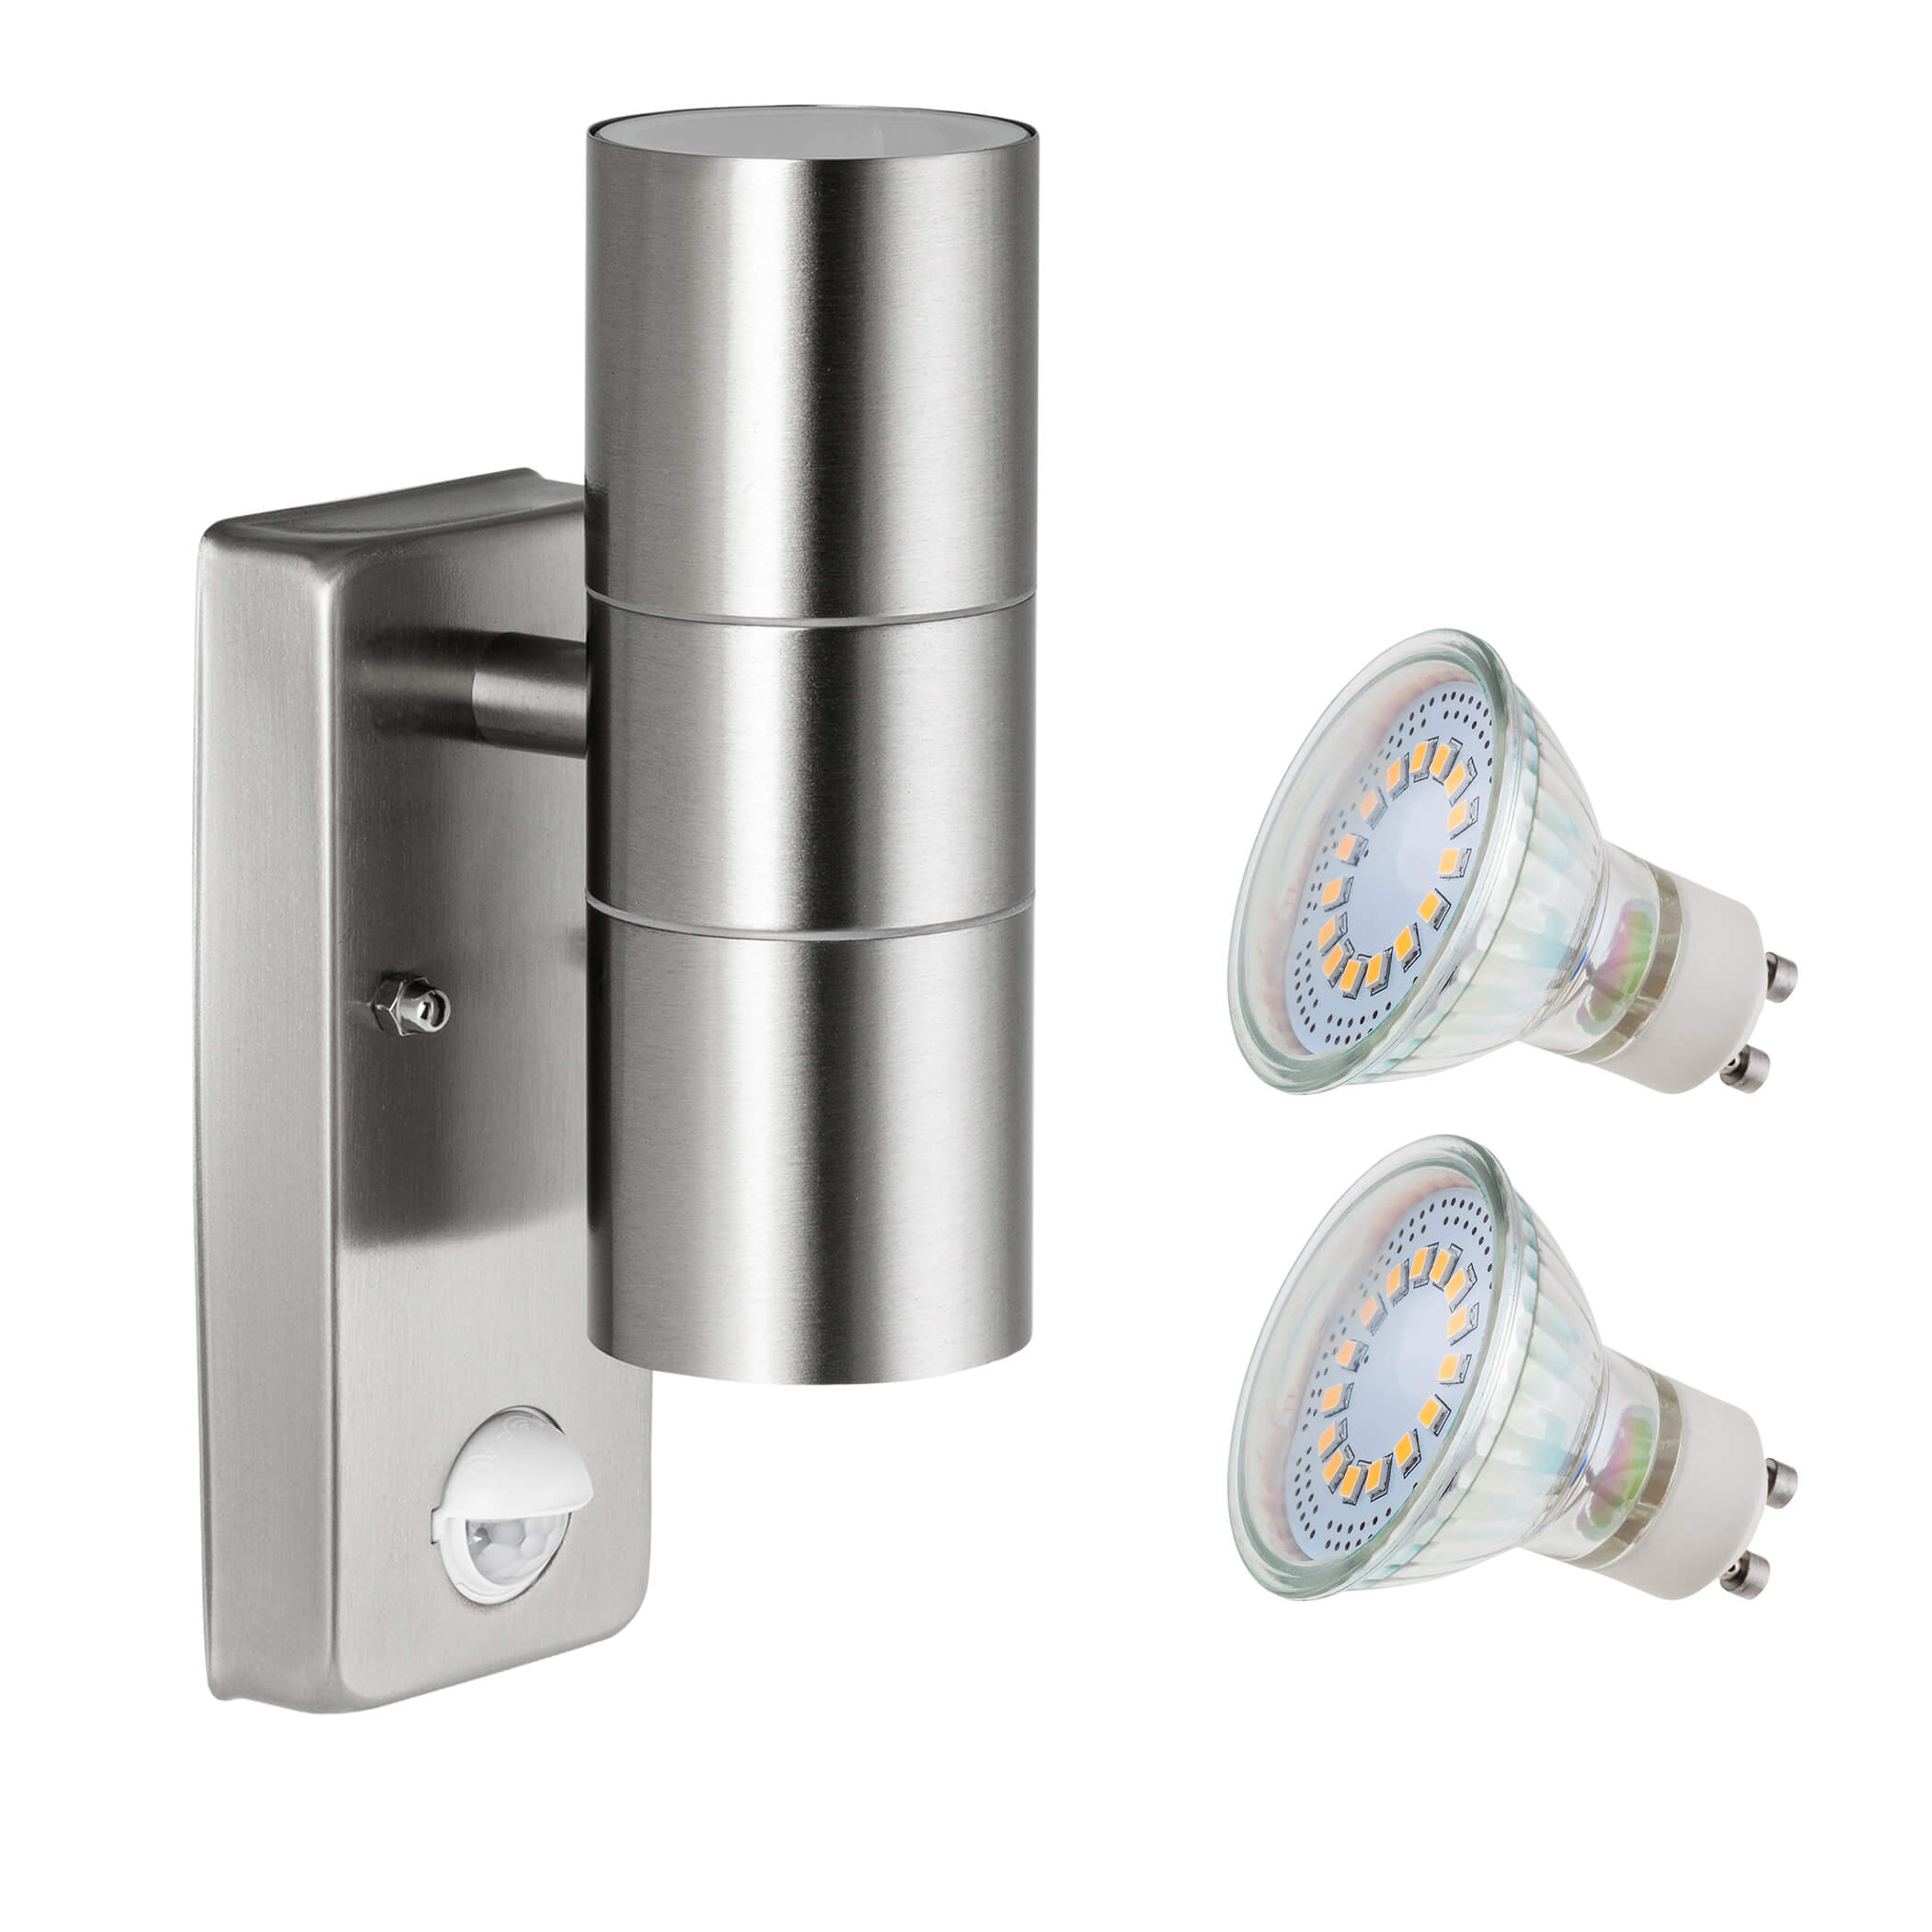 Wall Light WAL SENSOR A LED Buy LED Lamps And LED Lights In SEBSON Store